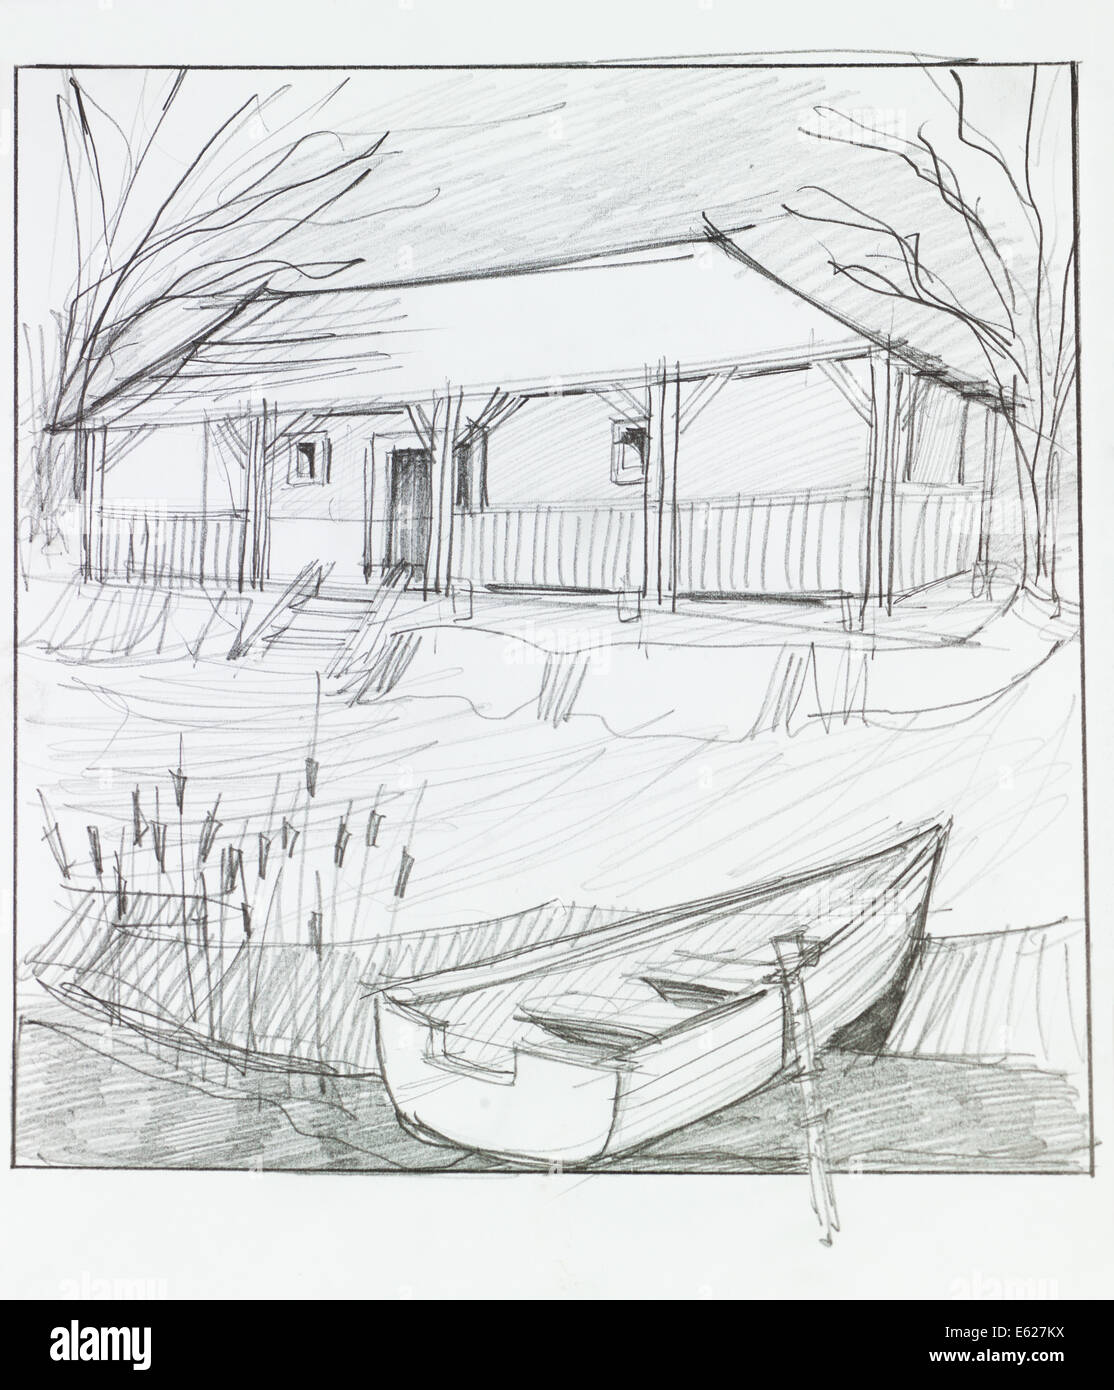 Hand Drawn Illustration Of Countryside House With Lake In Front And Wooden Boat